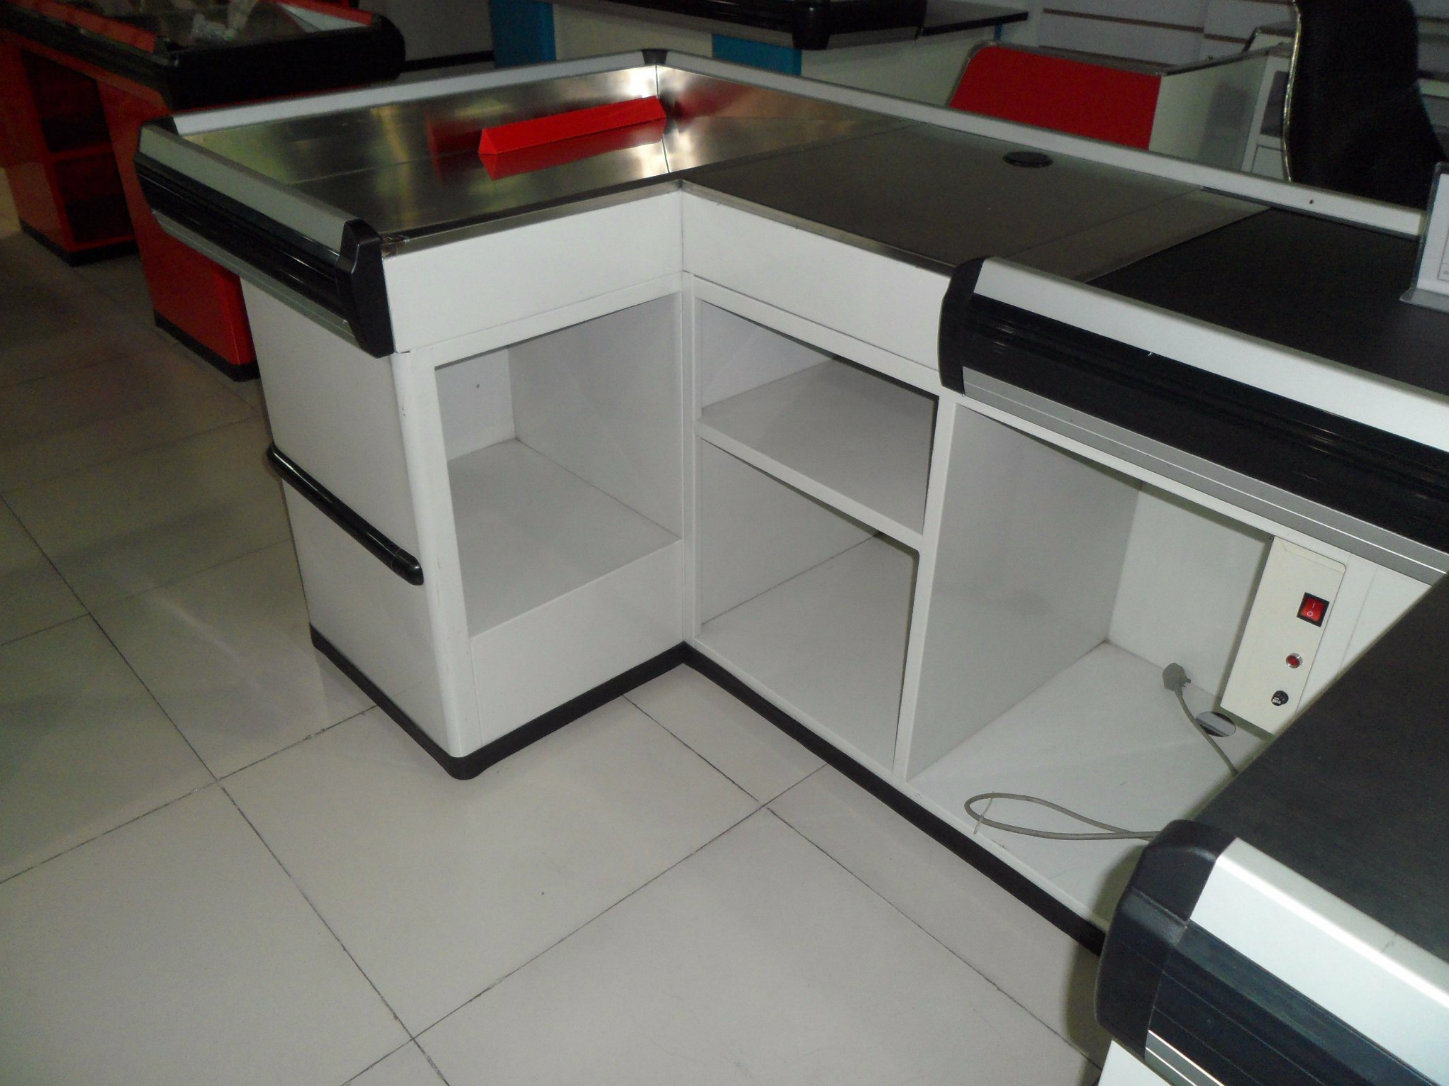 Sale Counter Design China Shop Checkout Counter Retail Store Cash Counter